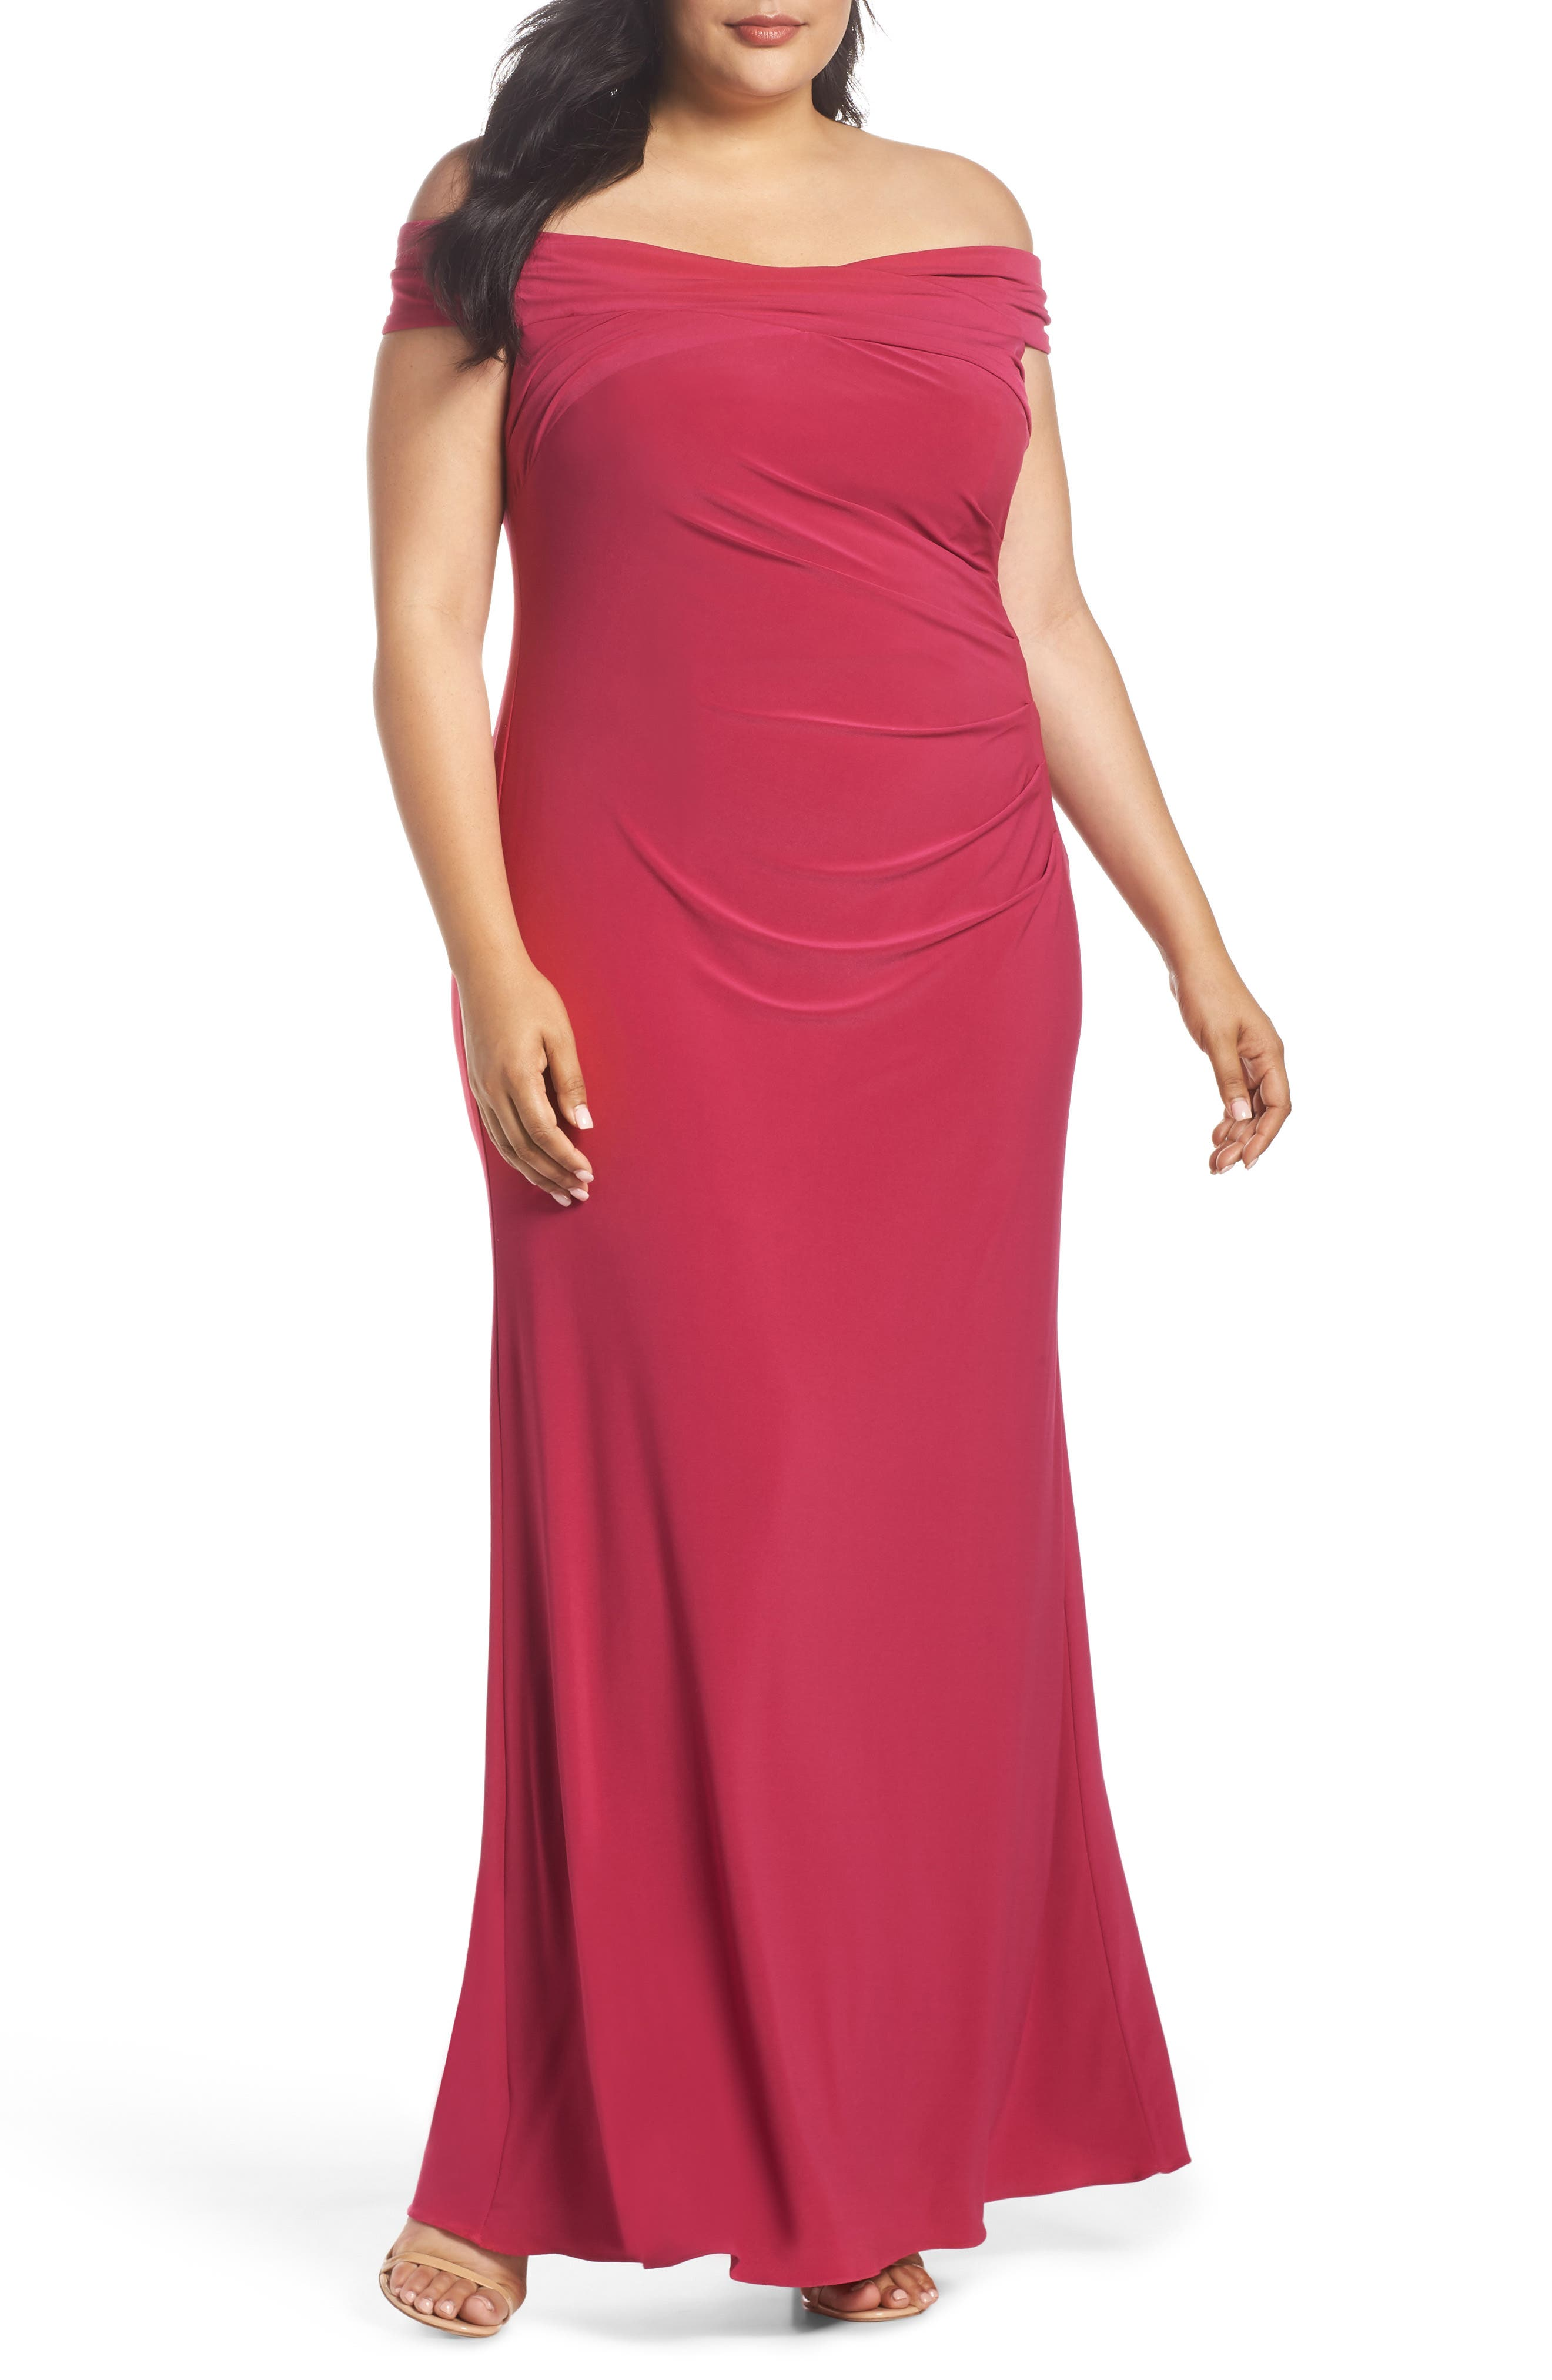 Adrianna Papell Off the Shoulder Jersey Dress (Plus Size)